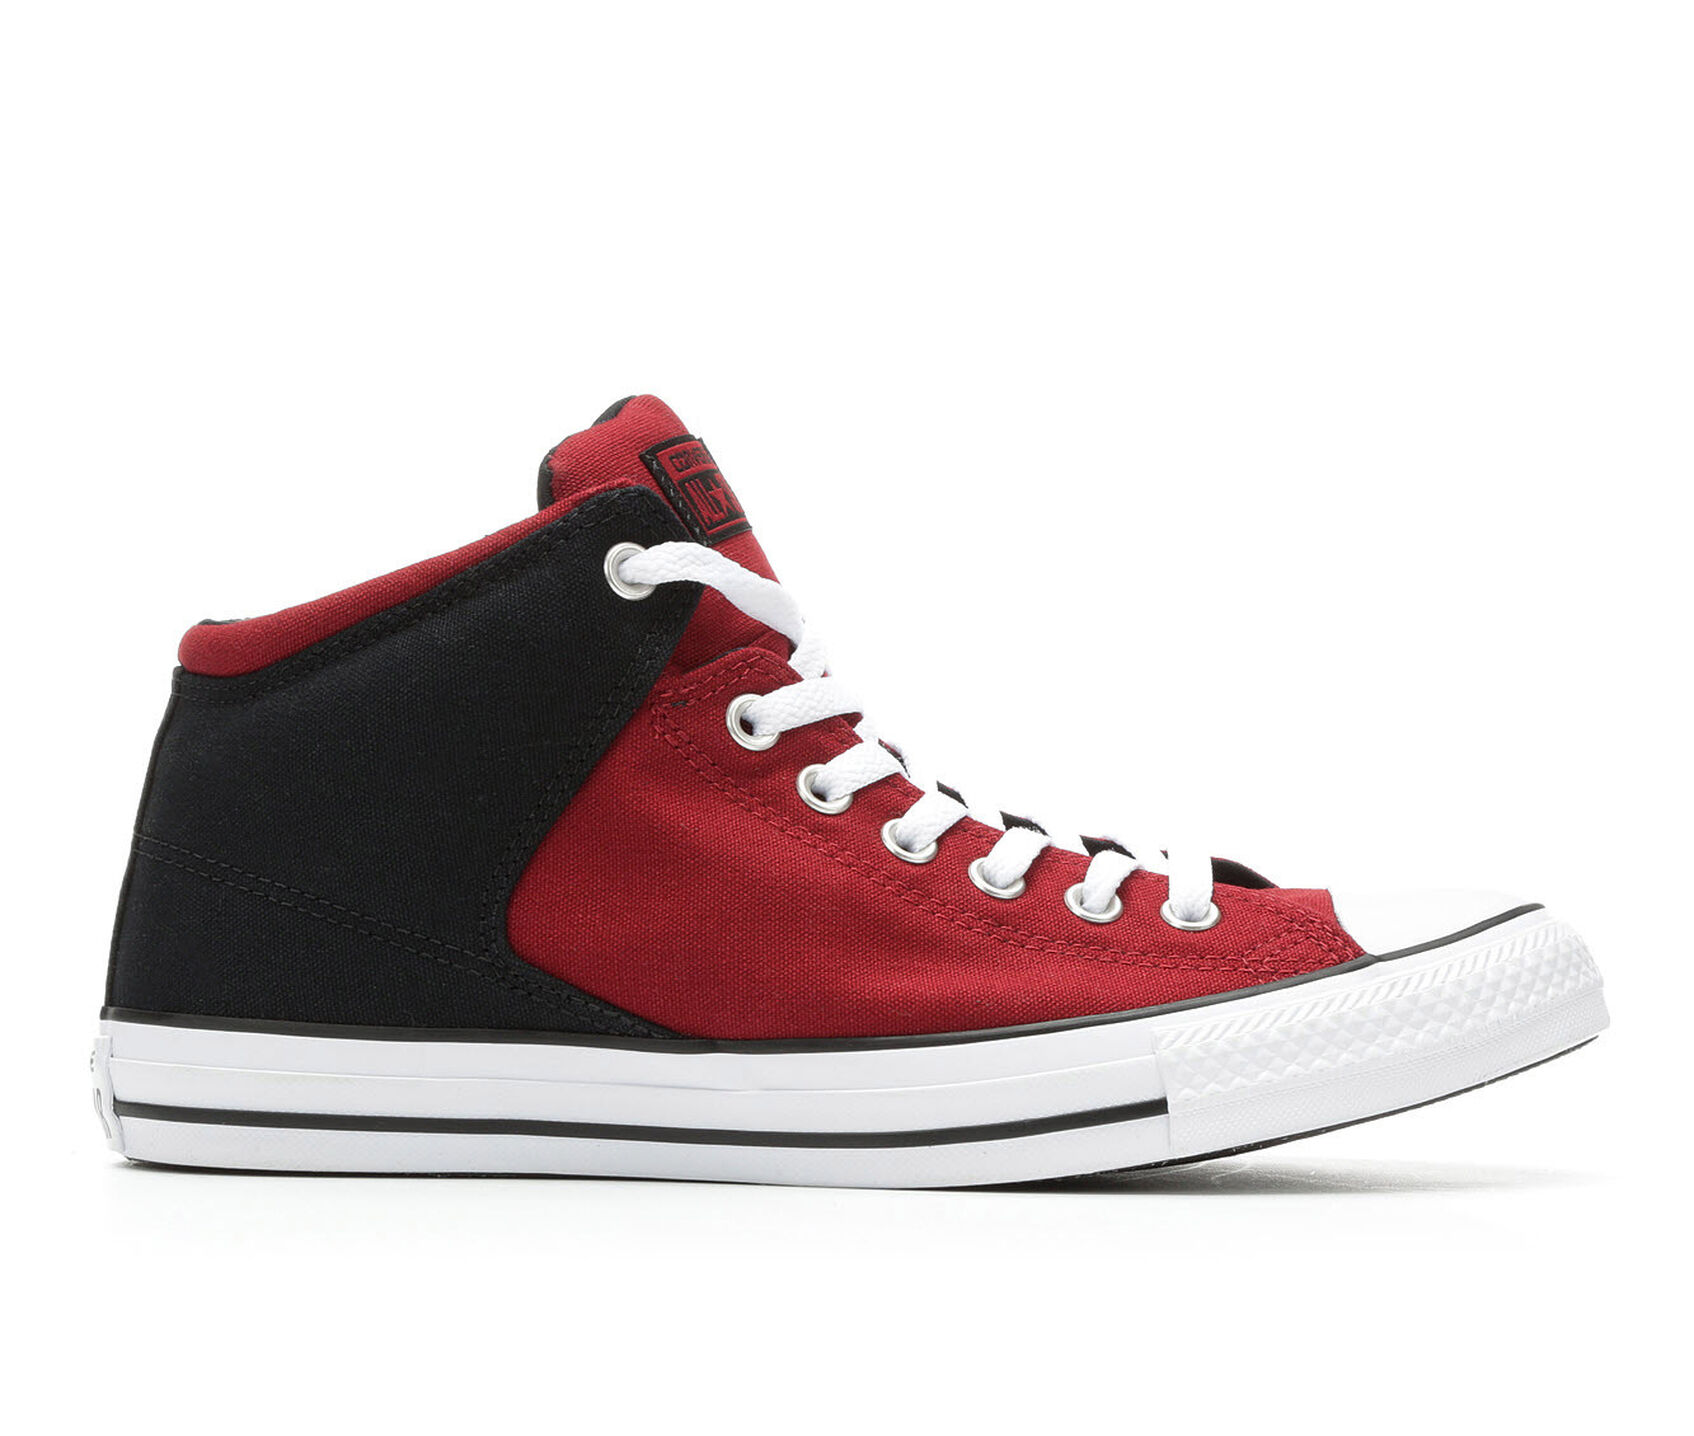 ... Converse Chuck Taylor High Street Hi Colorblock Sneakers. Previous 15f2ef315